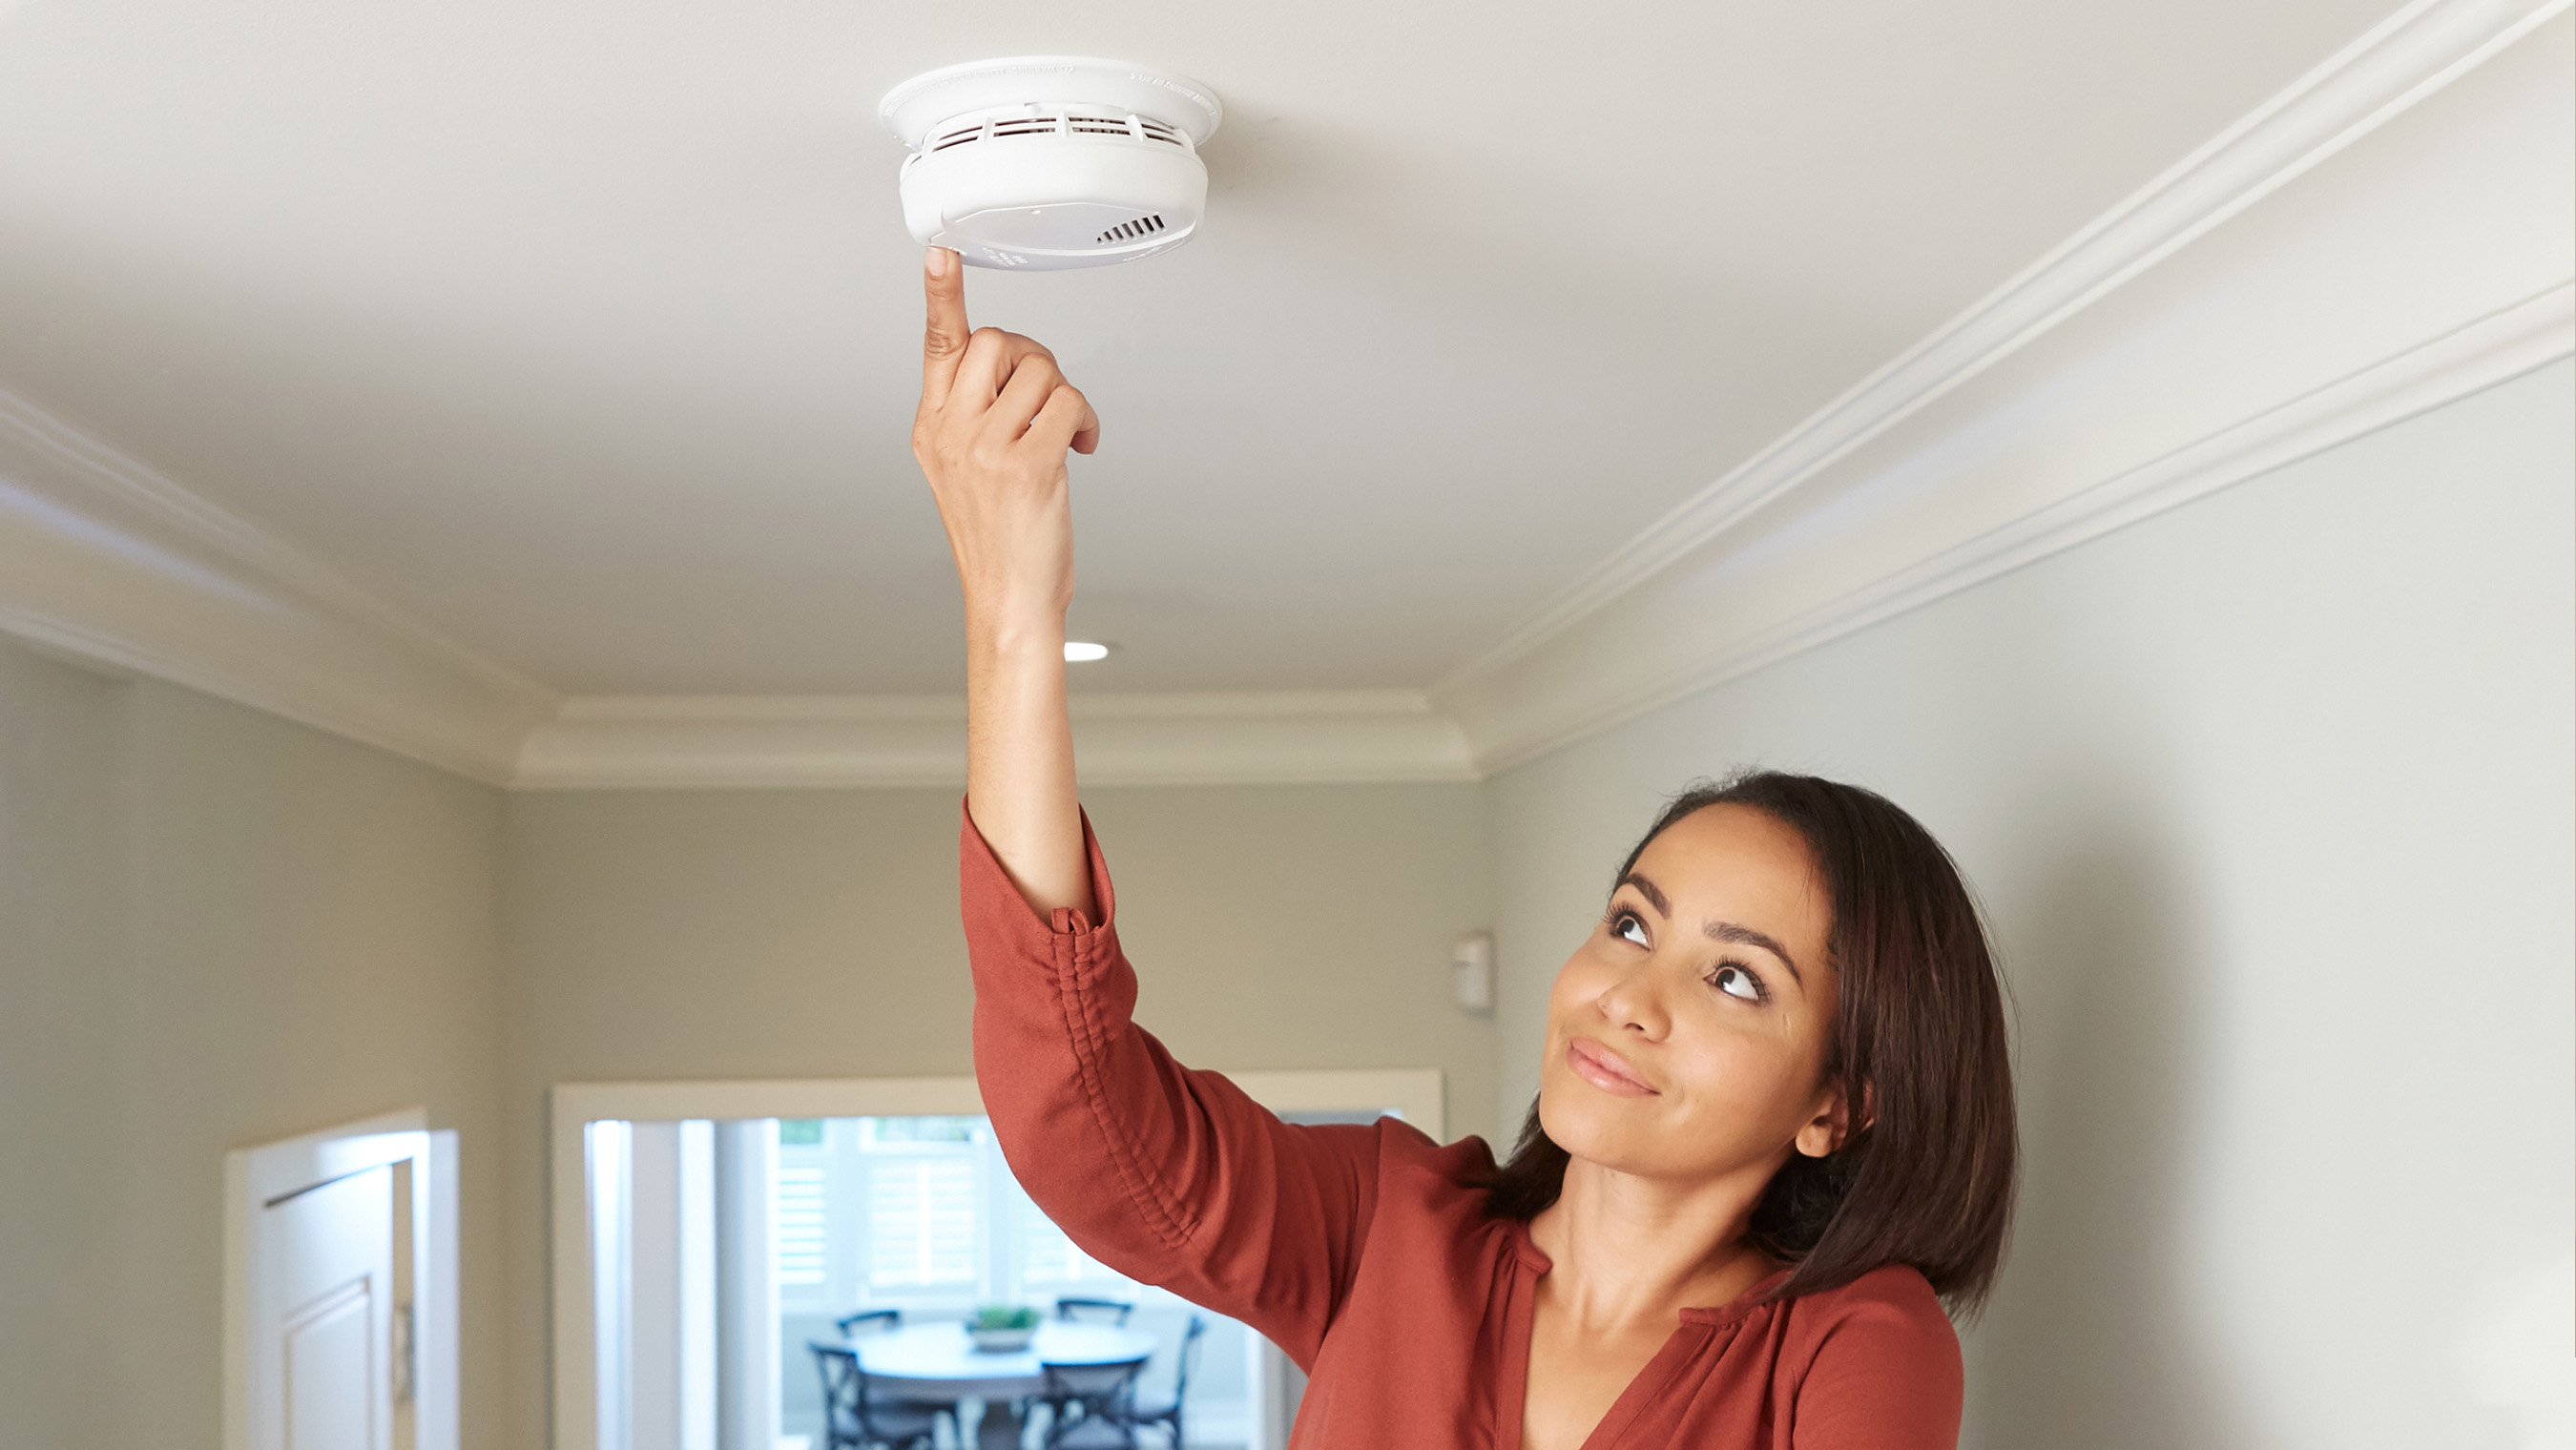 It's important to test your smoke alarm monthly.